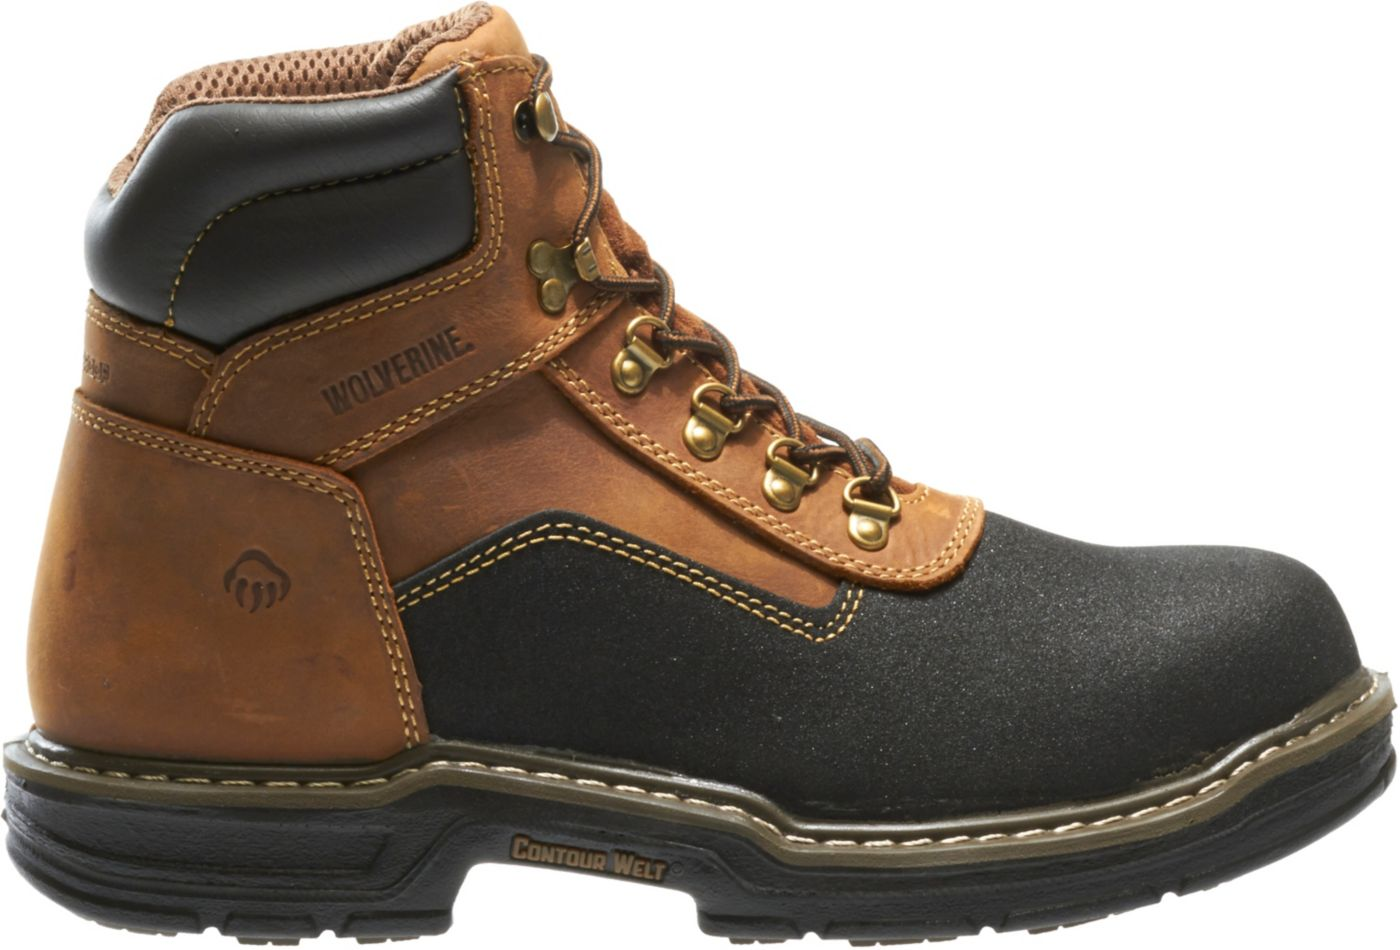 Wolverine Men's Corsair Waterproof EH Work Boots